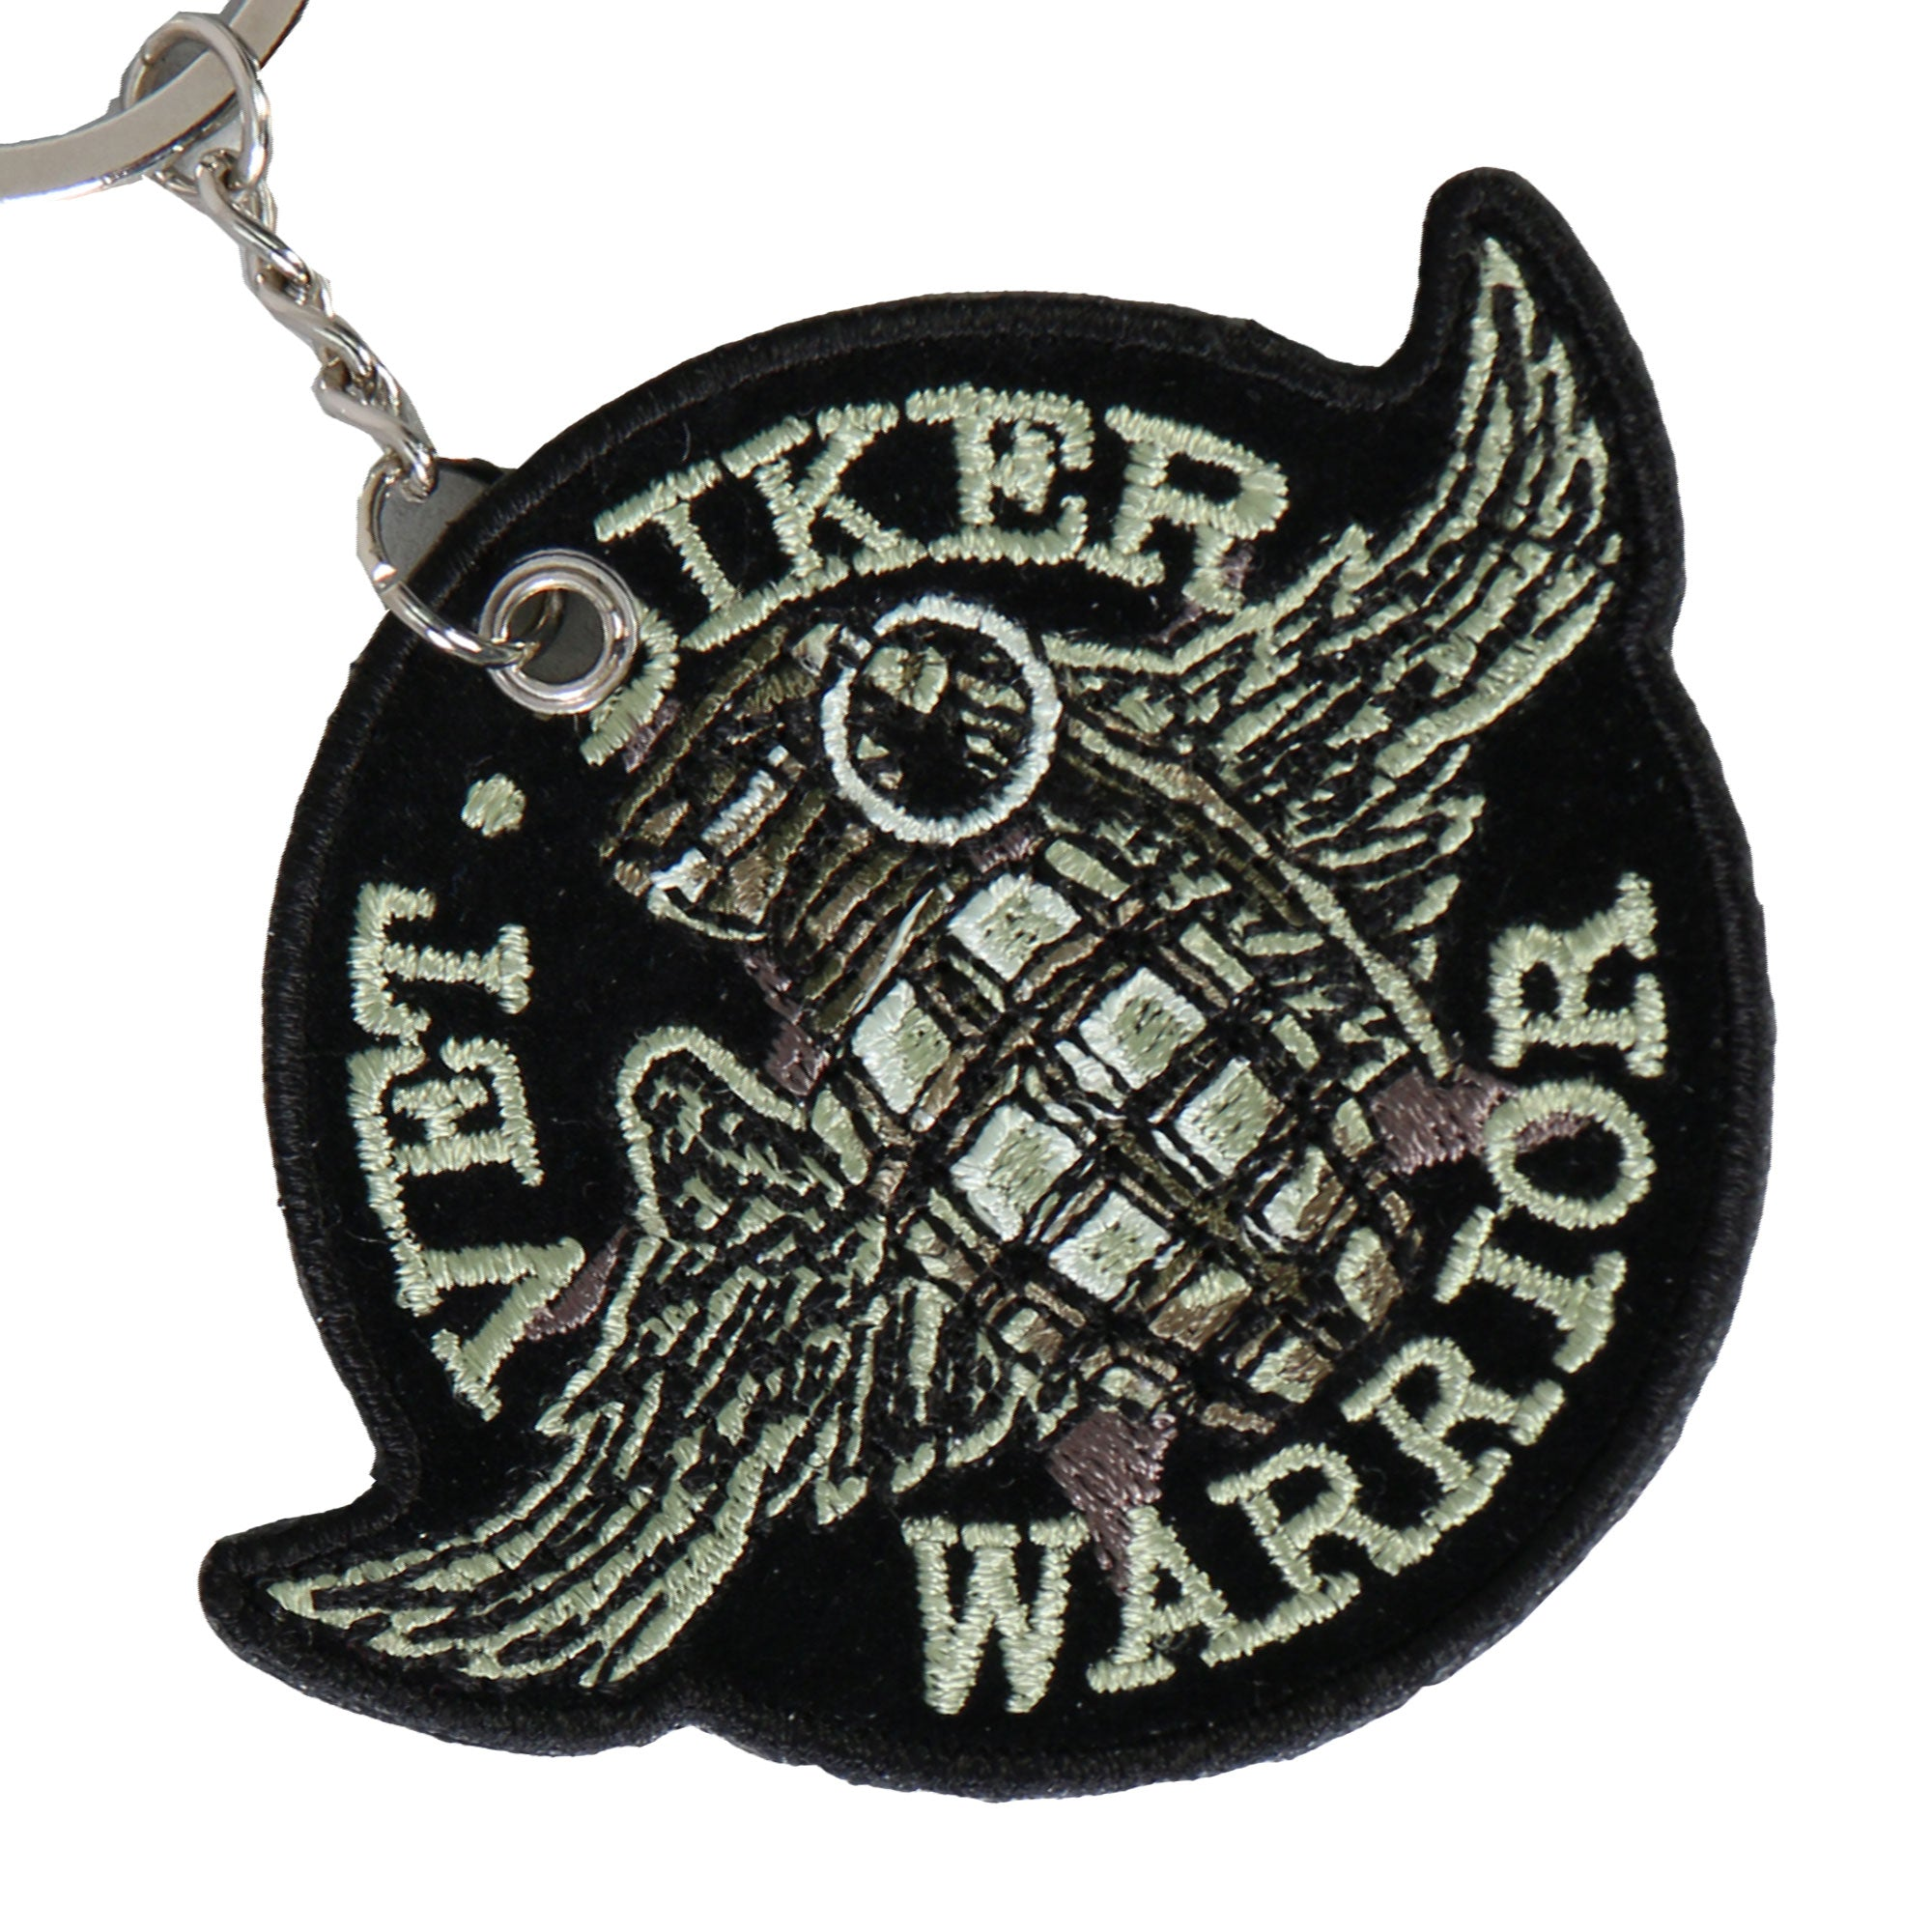 Hot Leathers Grenade Embroidered Key Chain